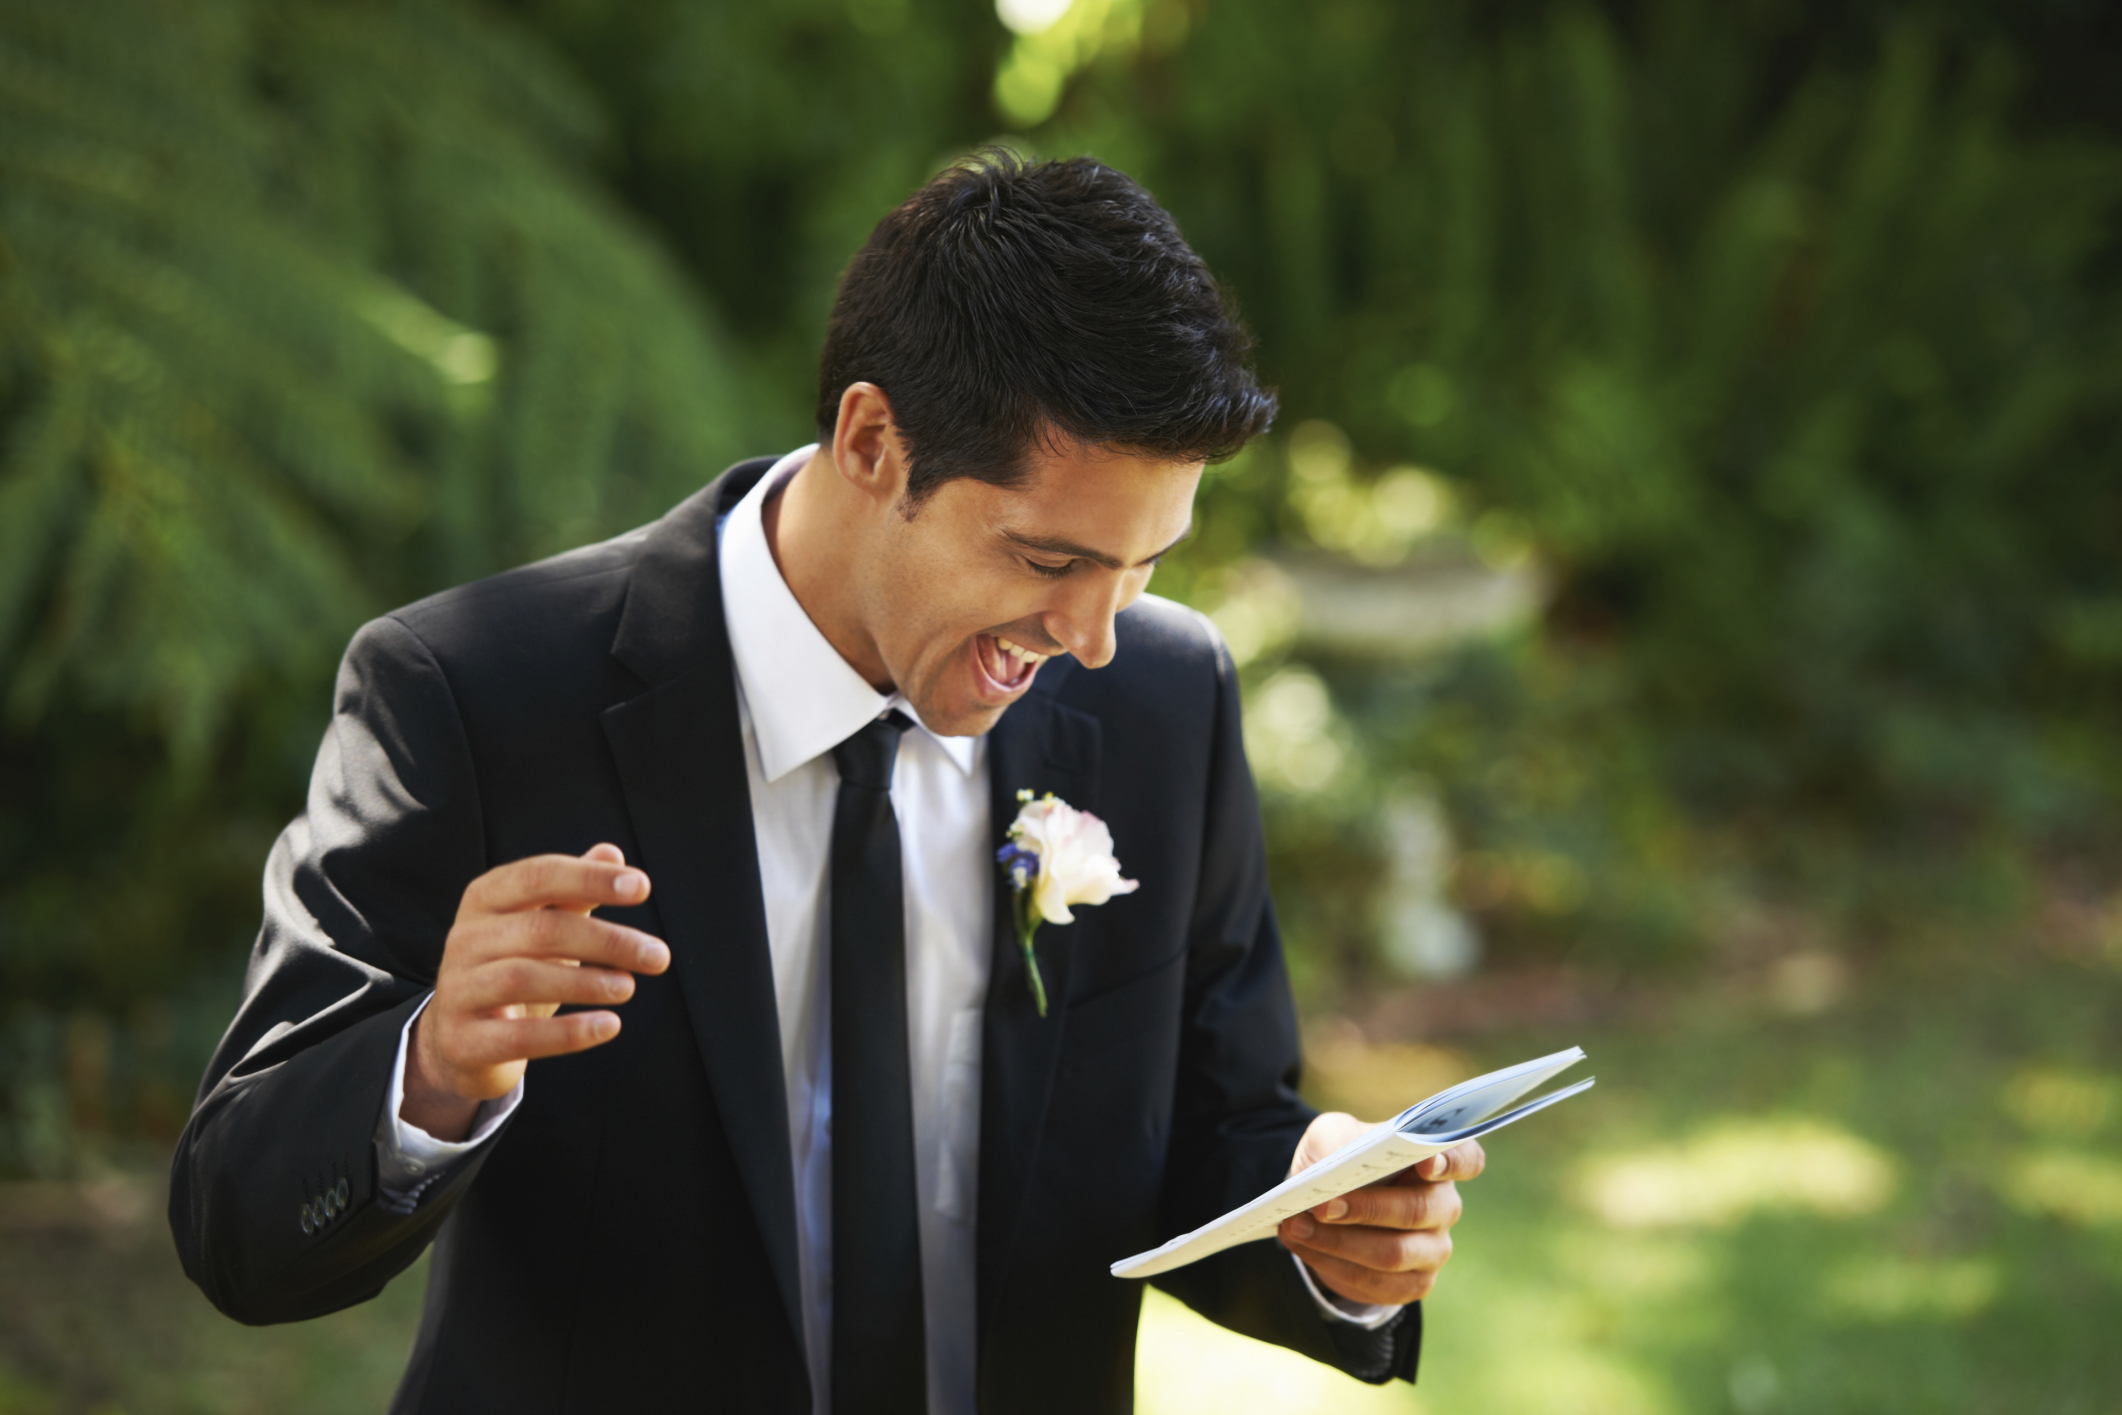 What To Include In A Grooms Wedding Toast